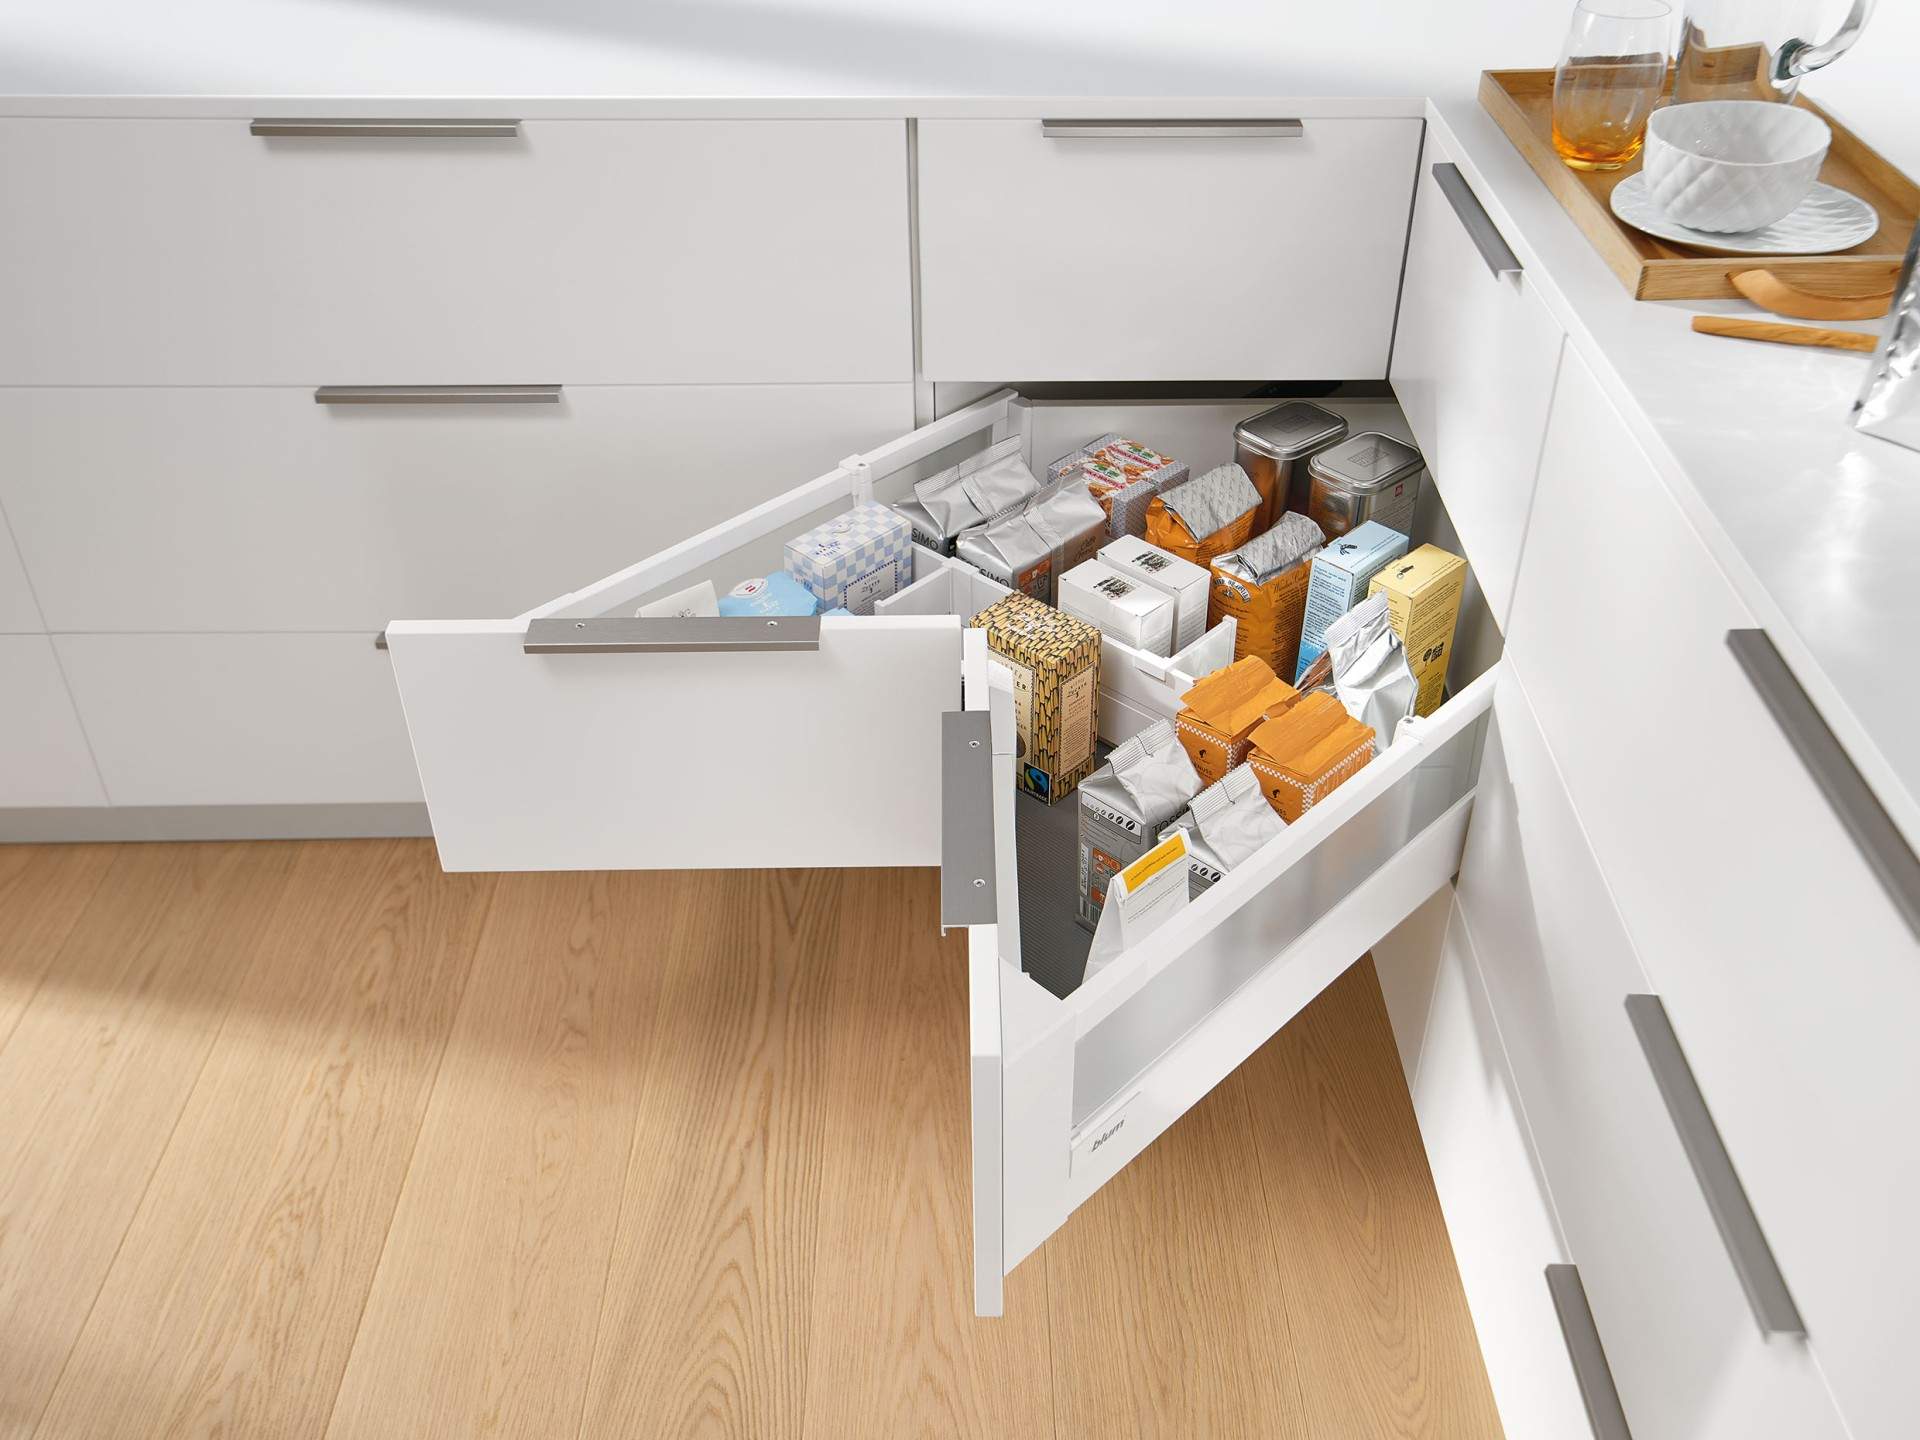 Space Corner Cabinet For Provisions Blum